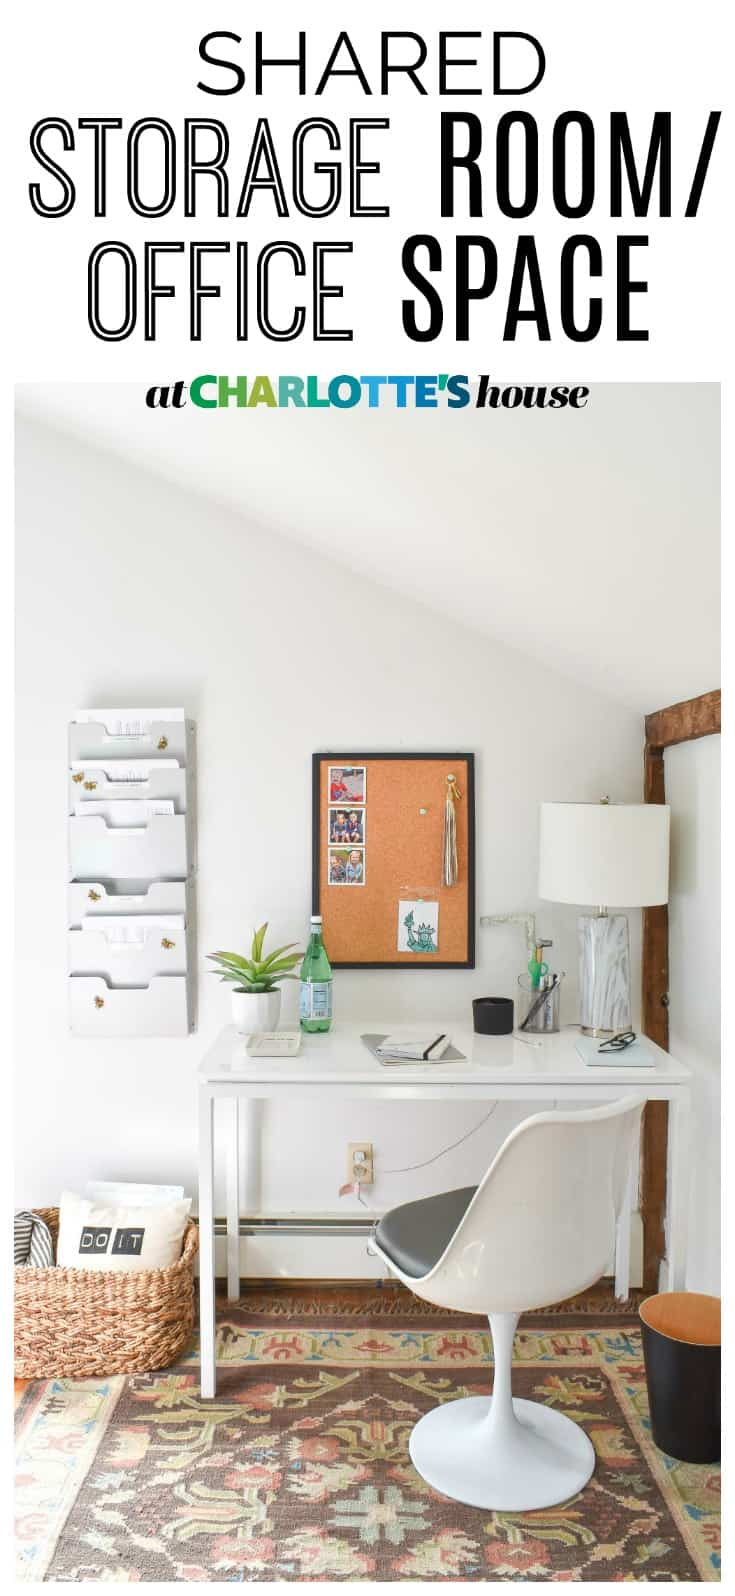 I turned this clutter filled closet into a neat and organized storage room office space.